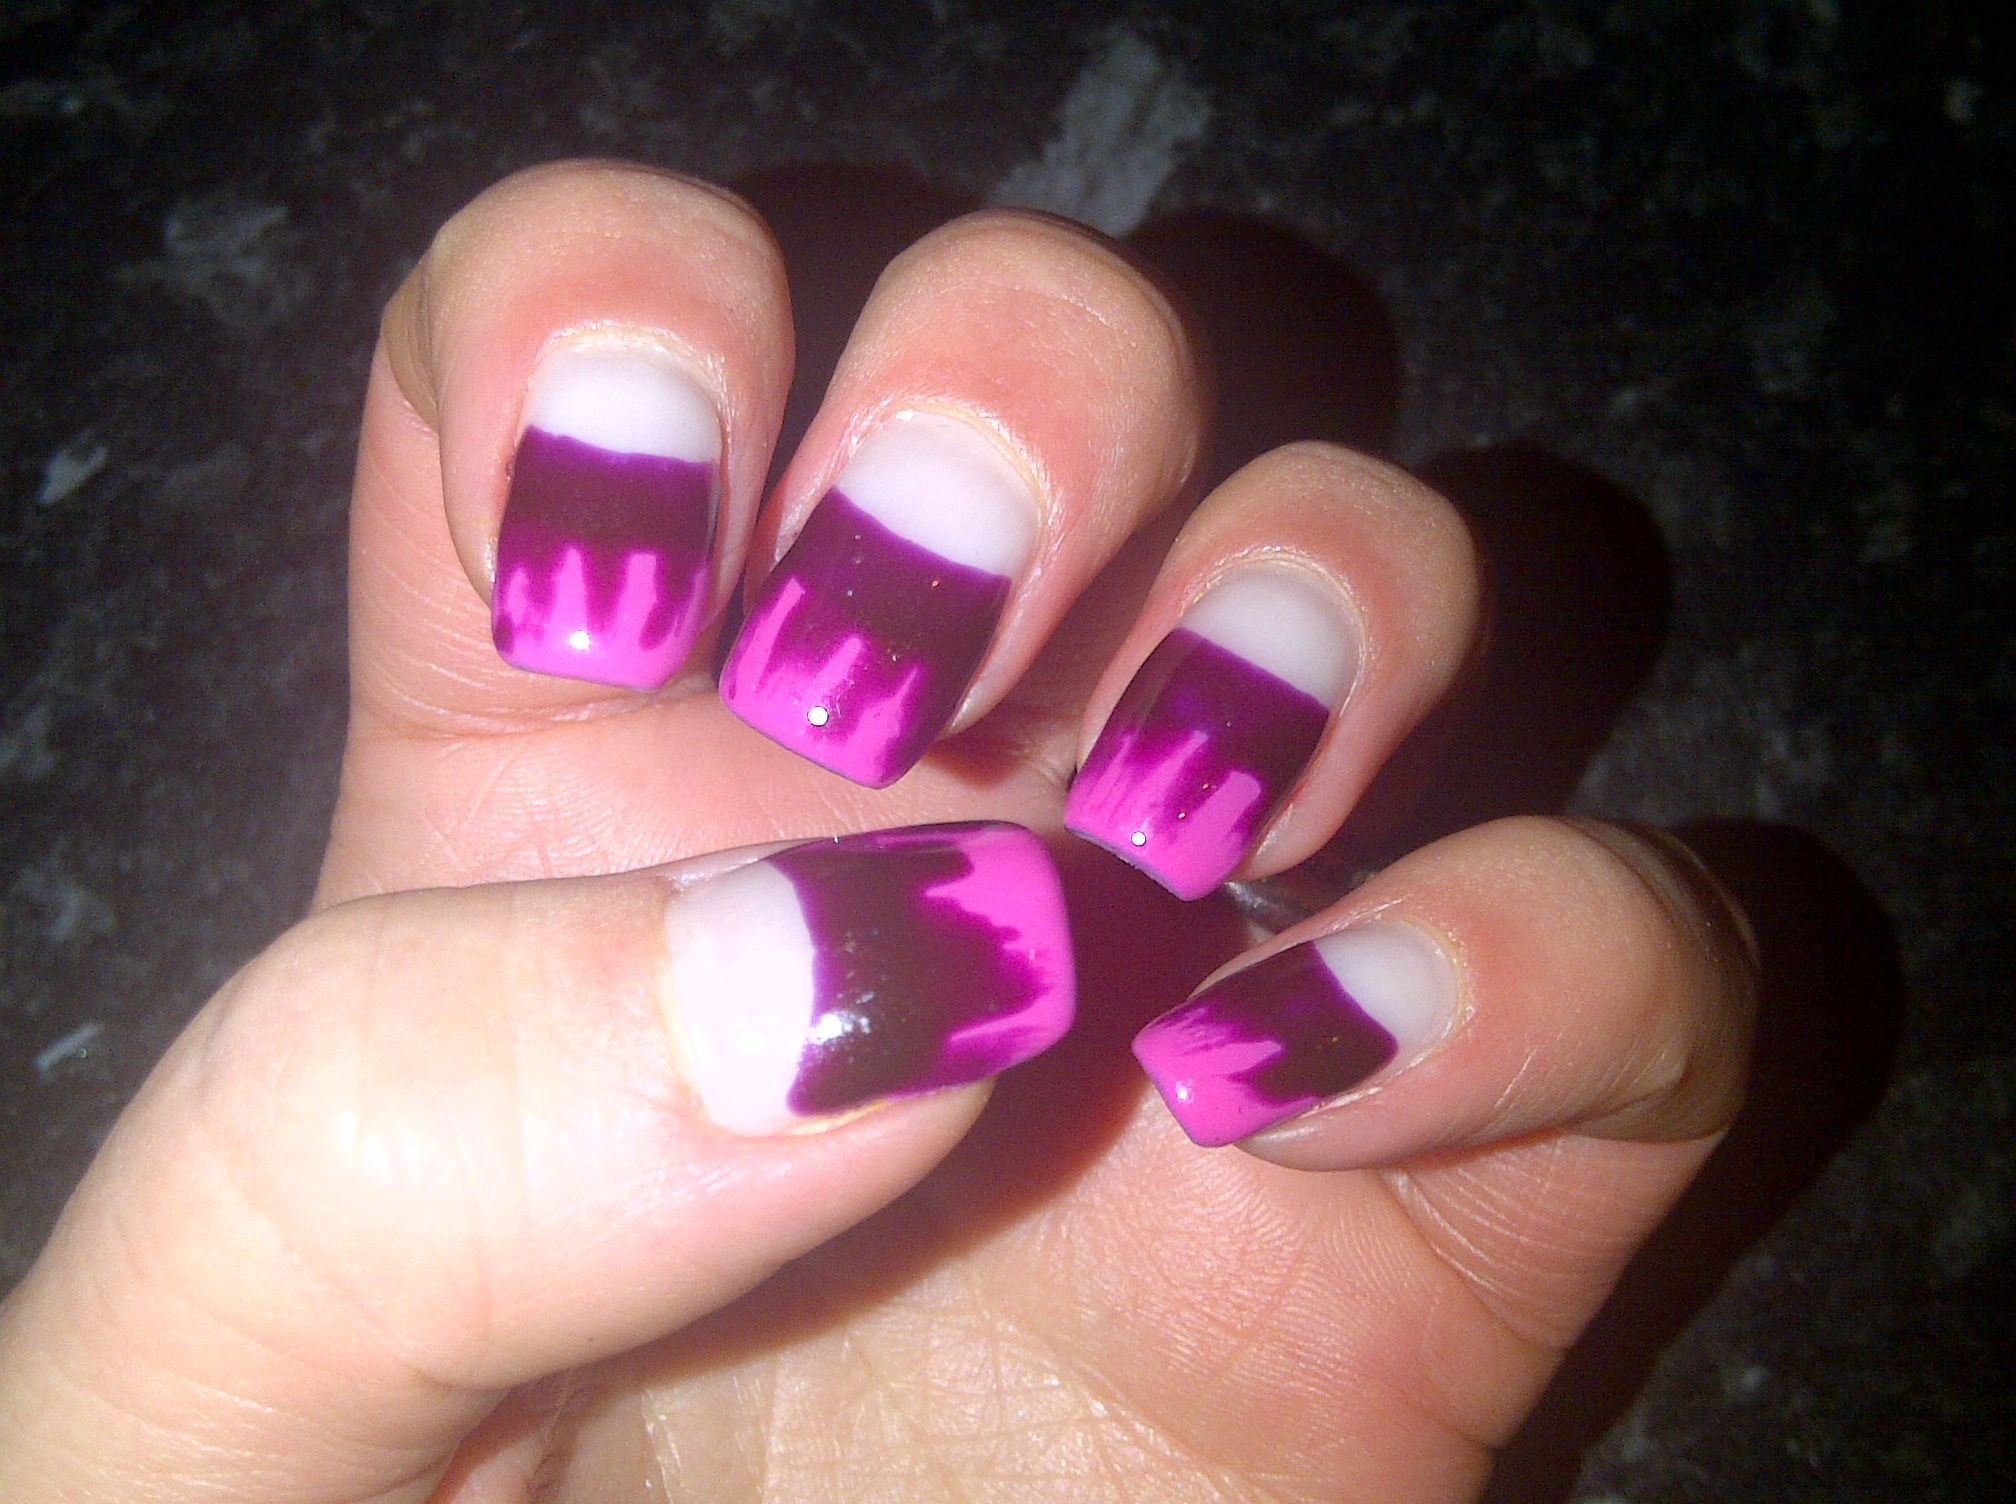 dripping pink for Halloween